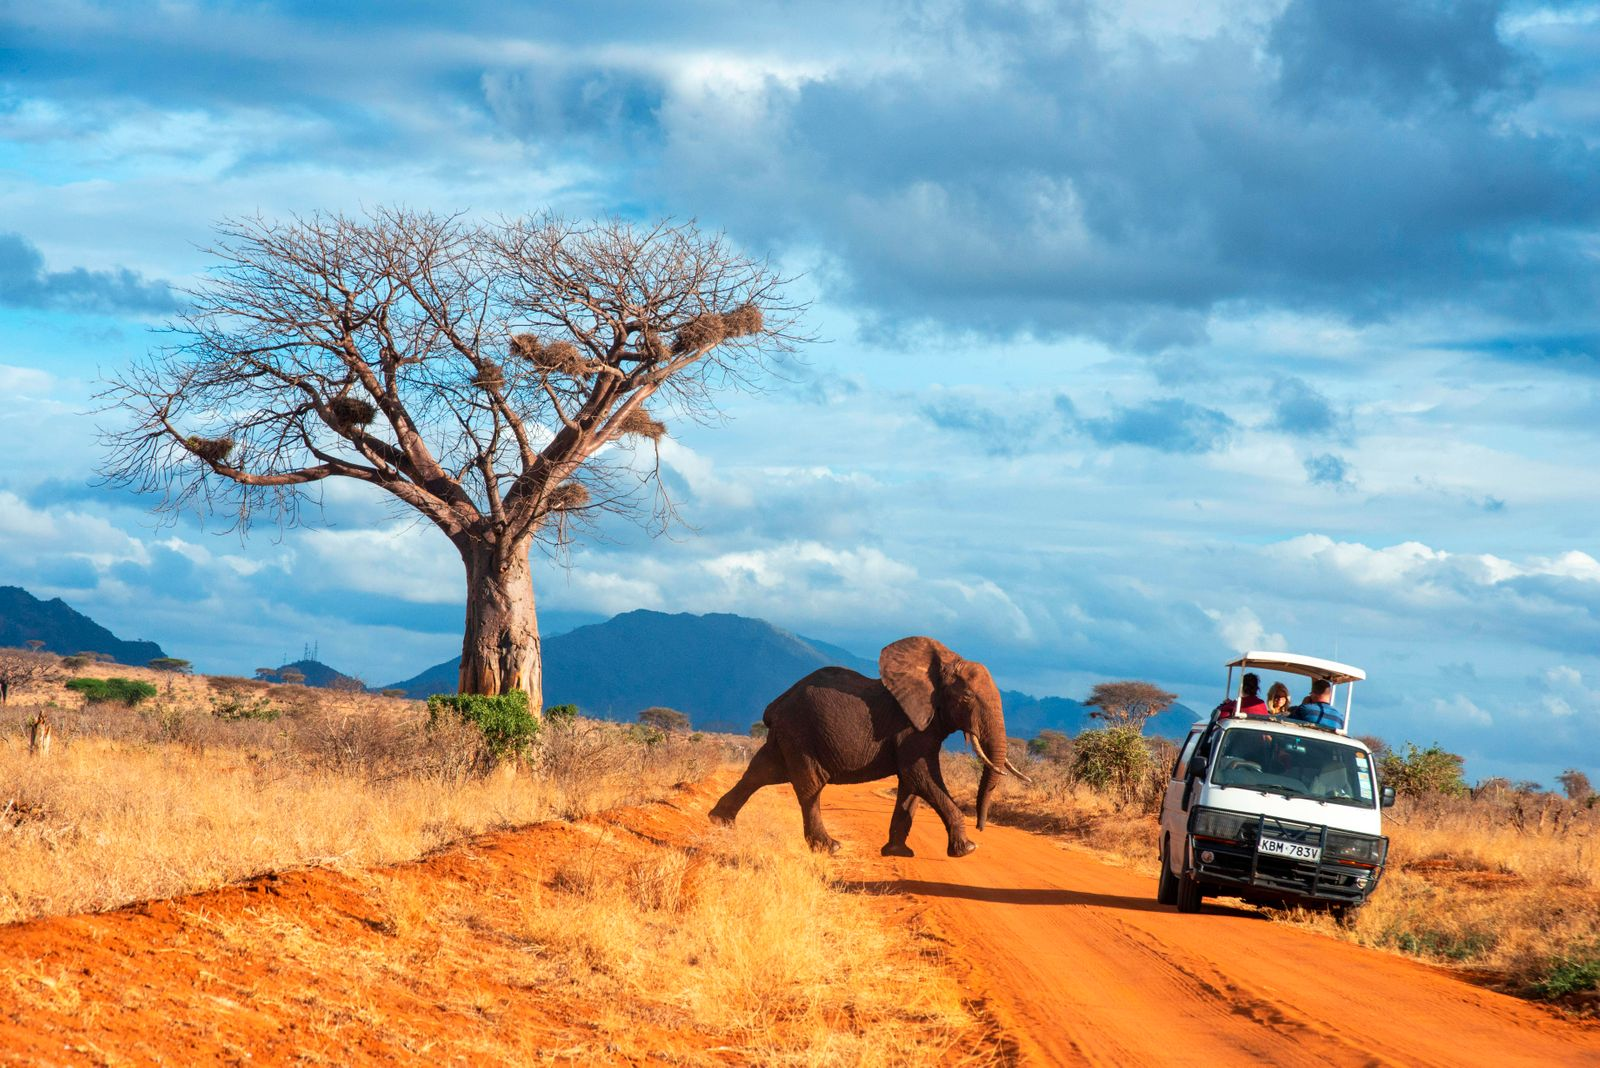 Safari vehicle car with tourists and an elephant covered in red dust blocks a track in Kenya s Tsavo National Park Kenya